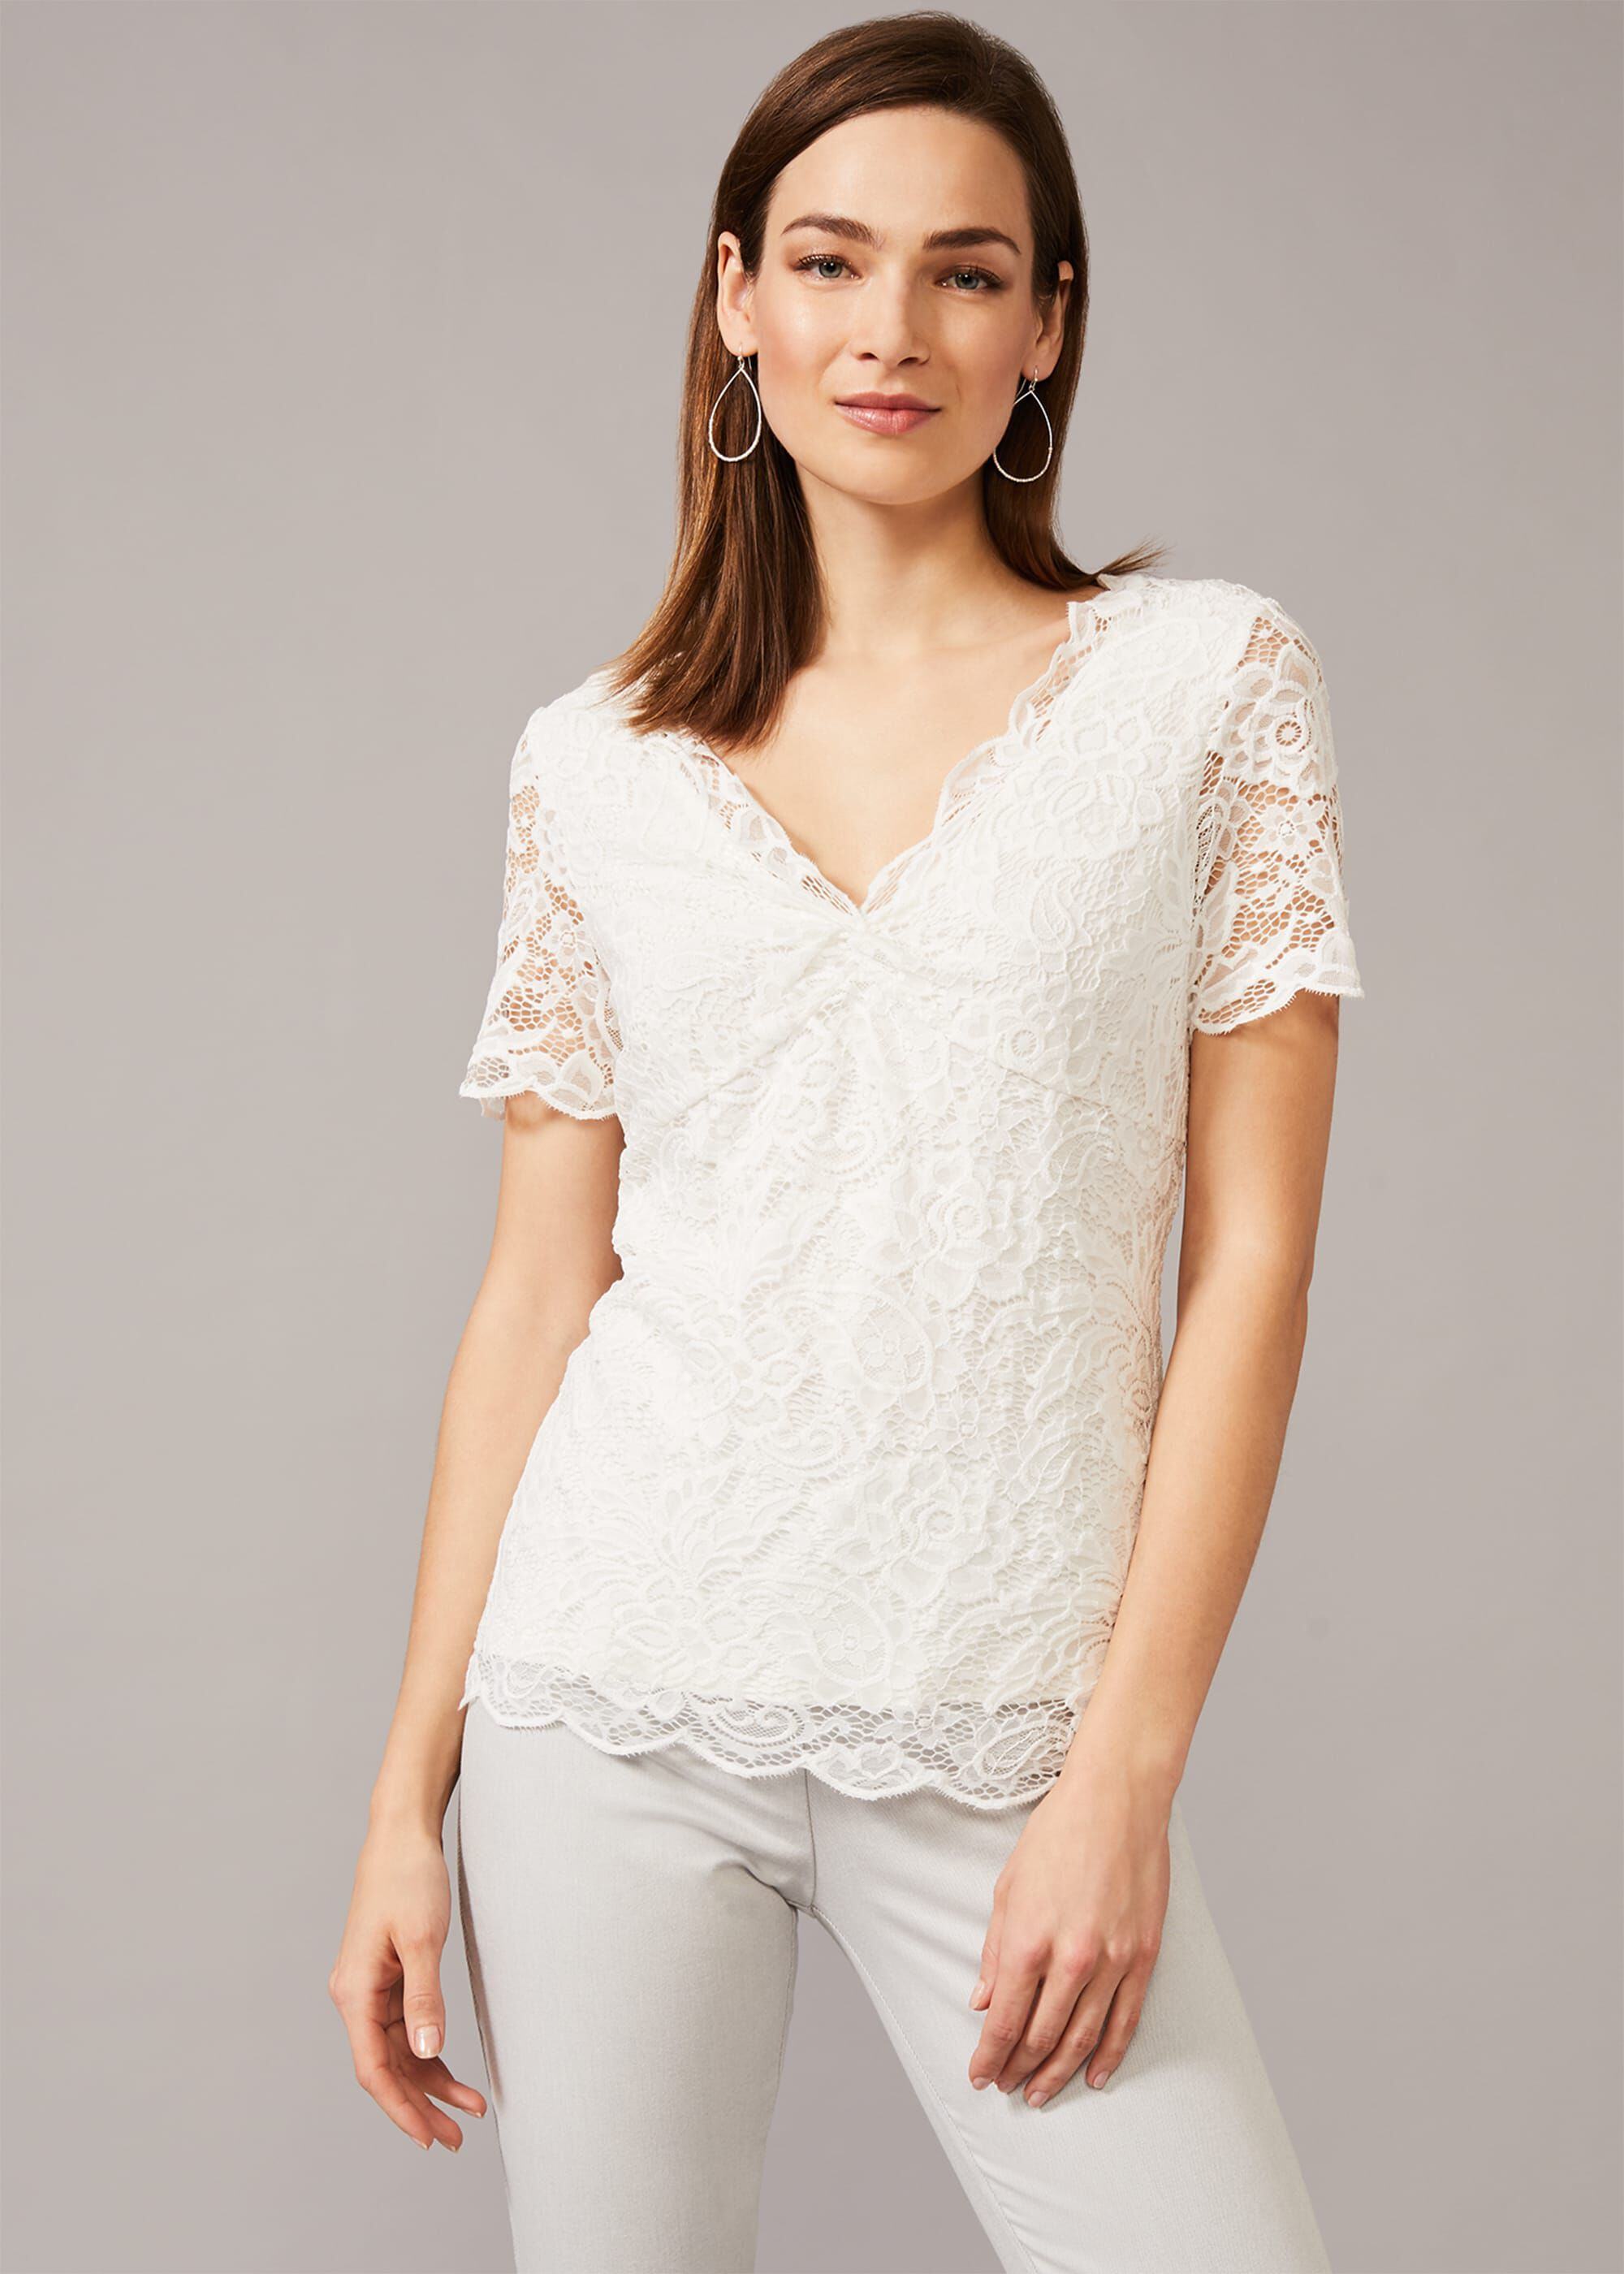 Phase Eight Brynlee Lace Top, Cream, Tops